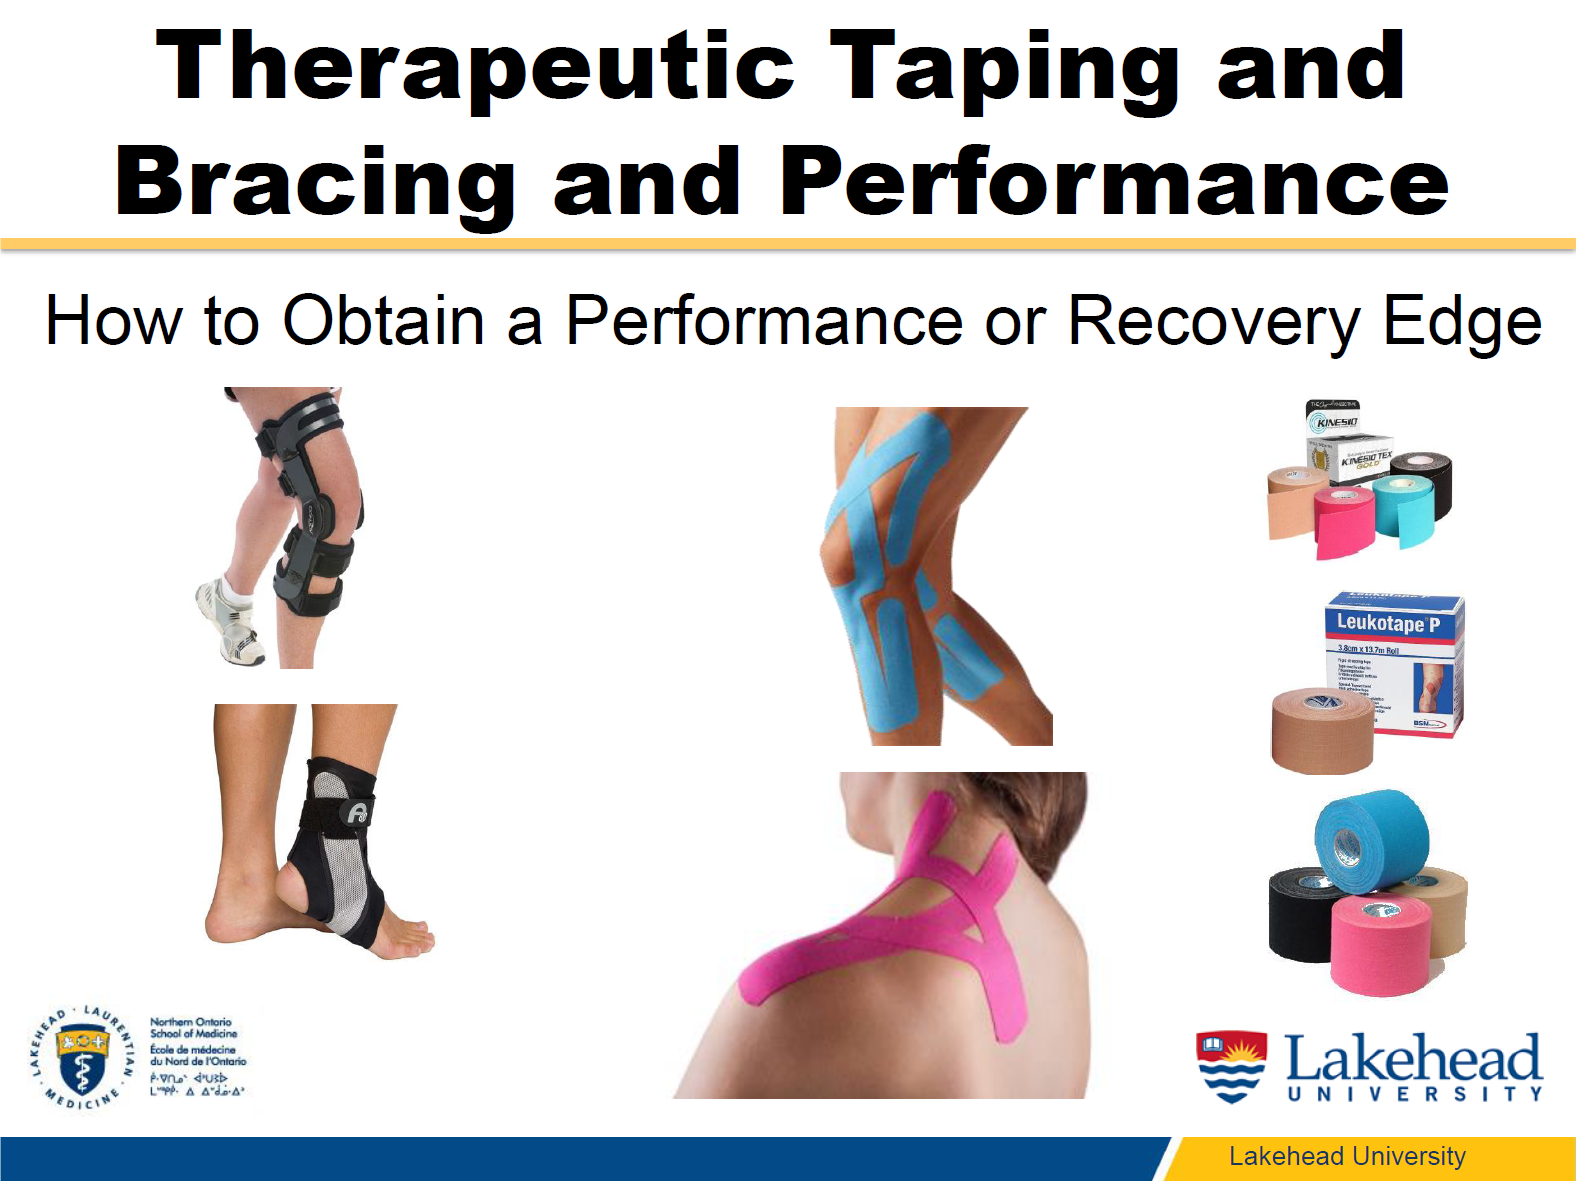 Dr. Sanzo Therapeutic Taping and Bracing